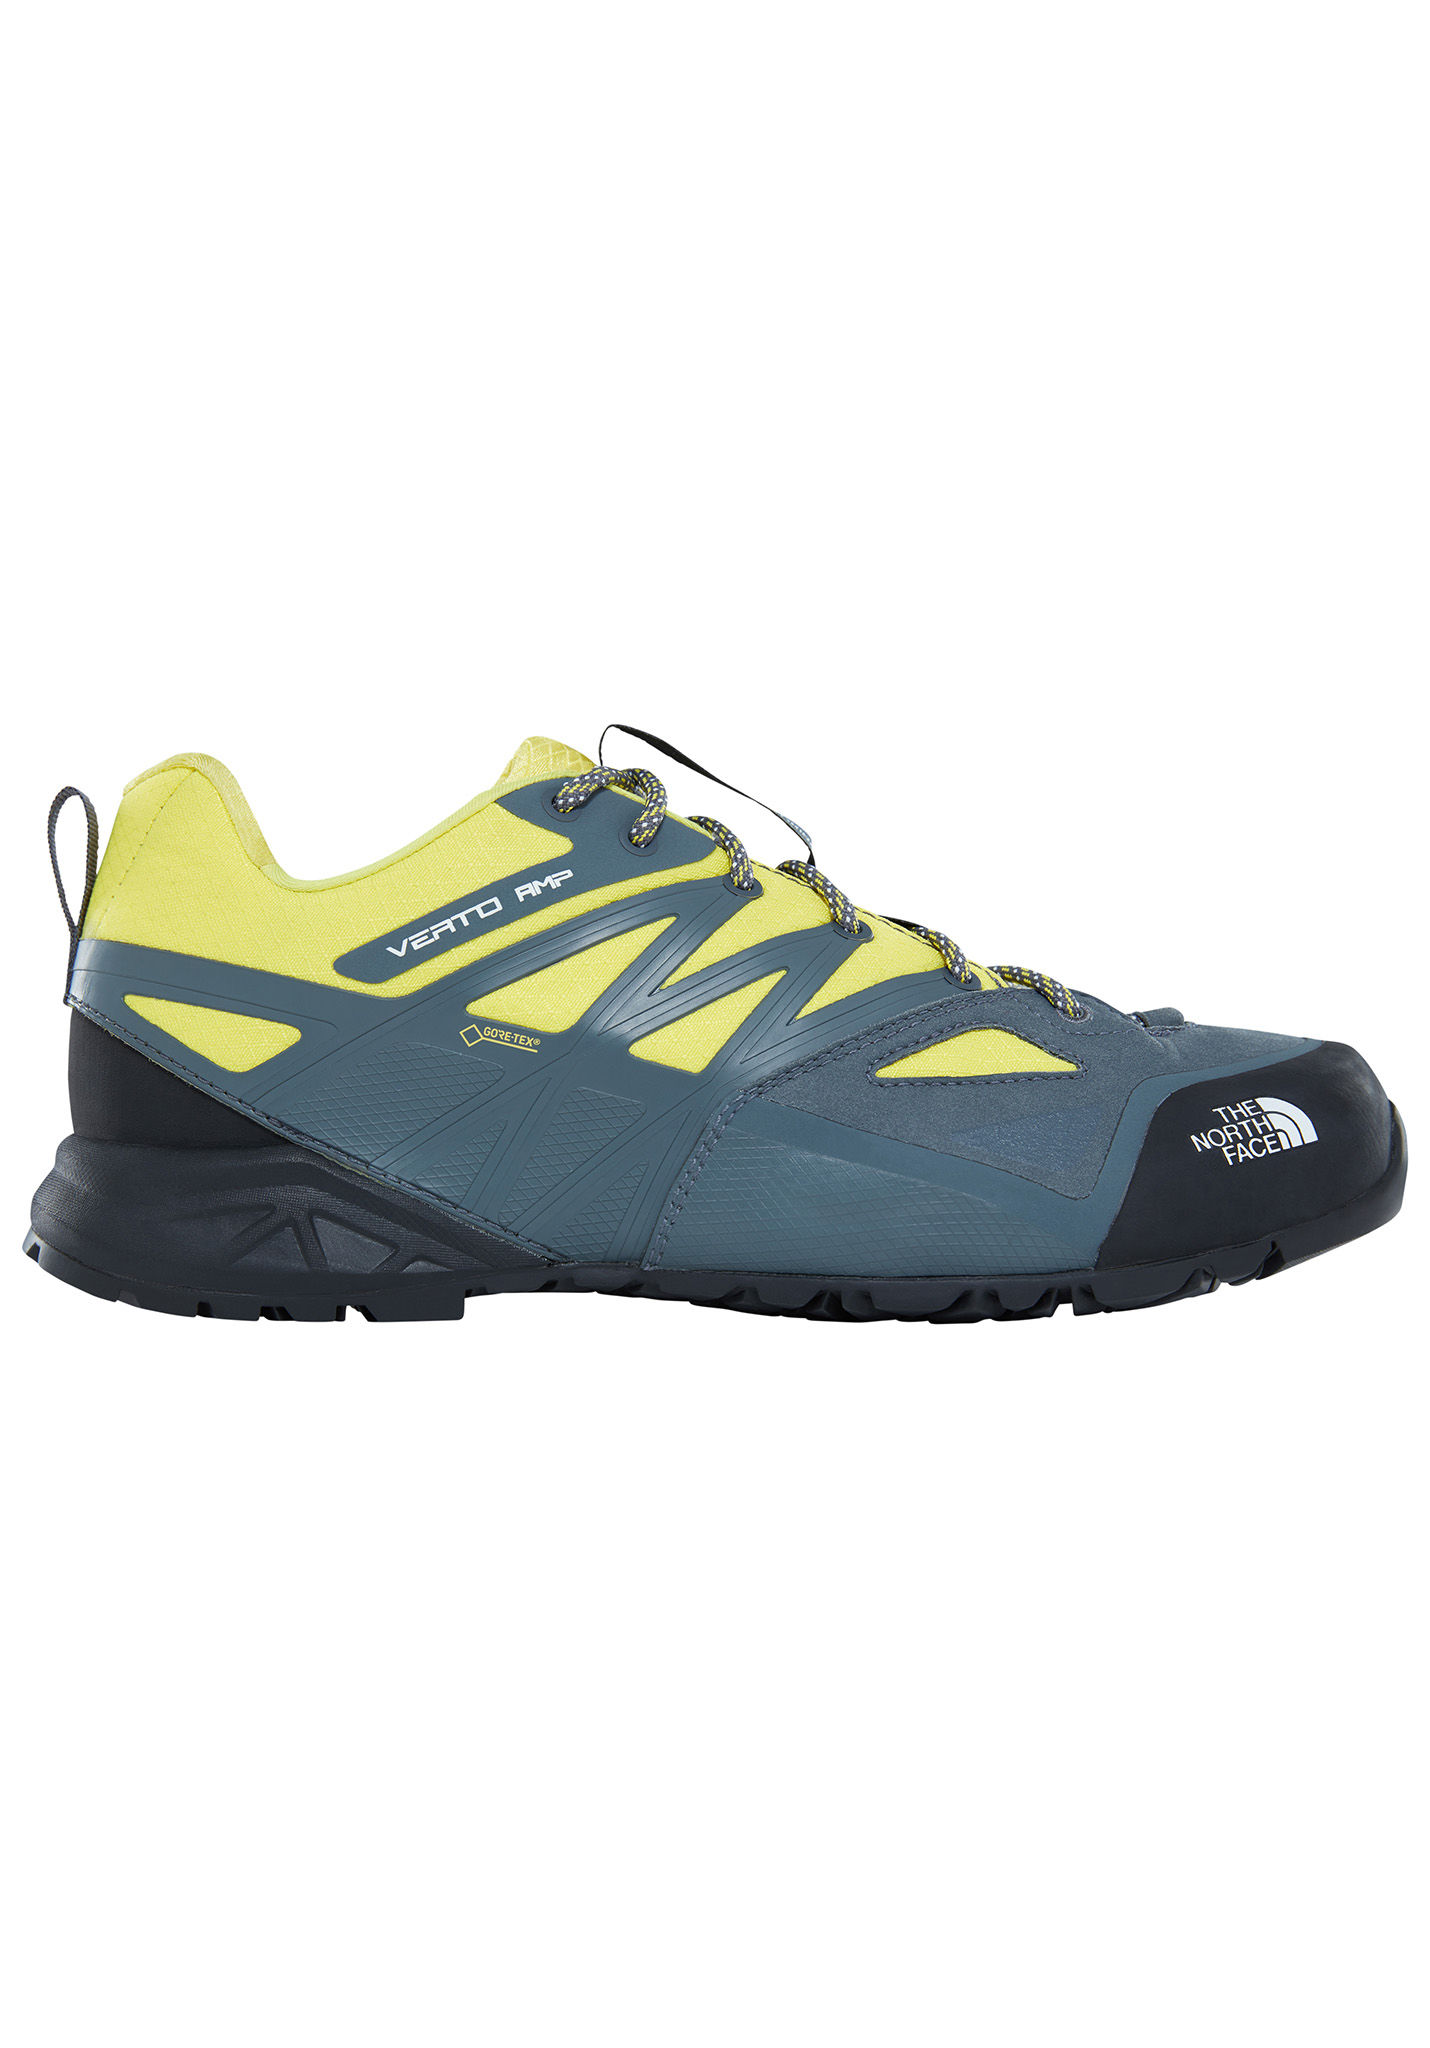 d3db4108ed5 THE NORTH FACE Verto Amp GTX - Trekking Shoes for Men - Grey - Planet Sports